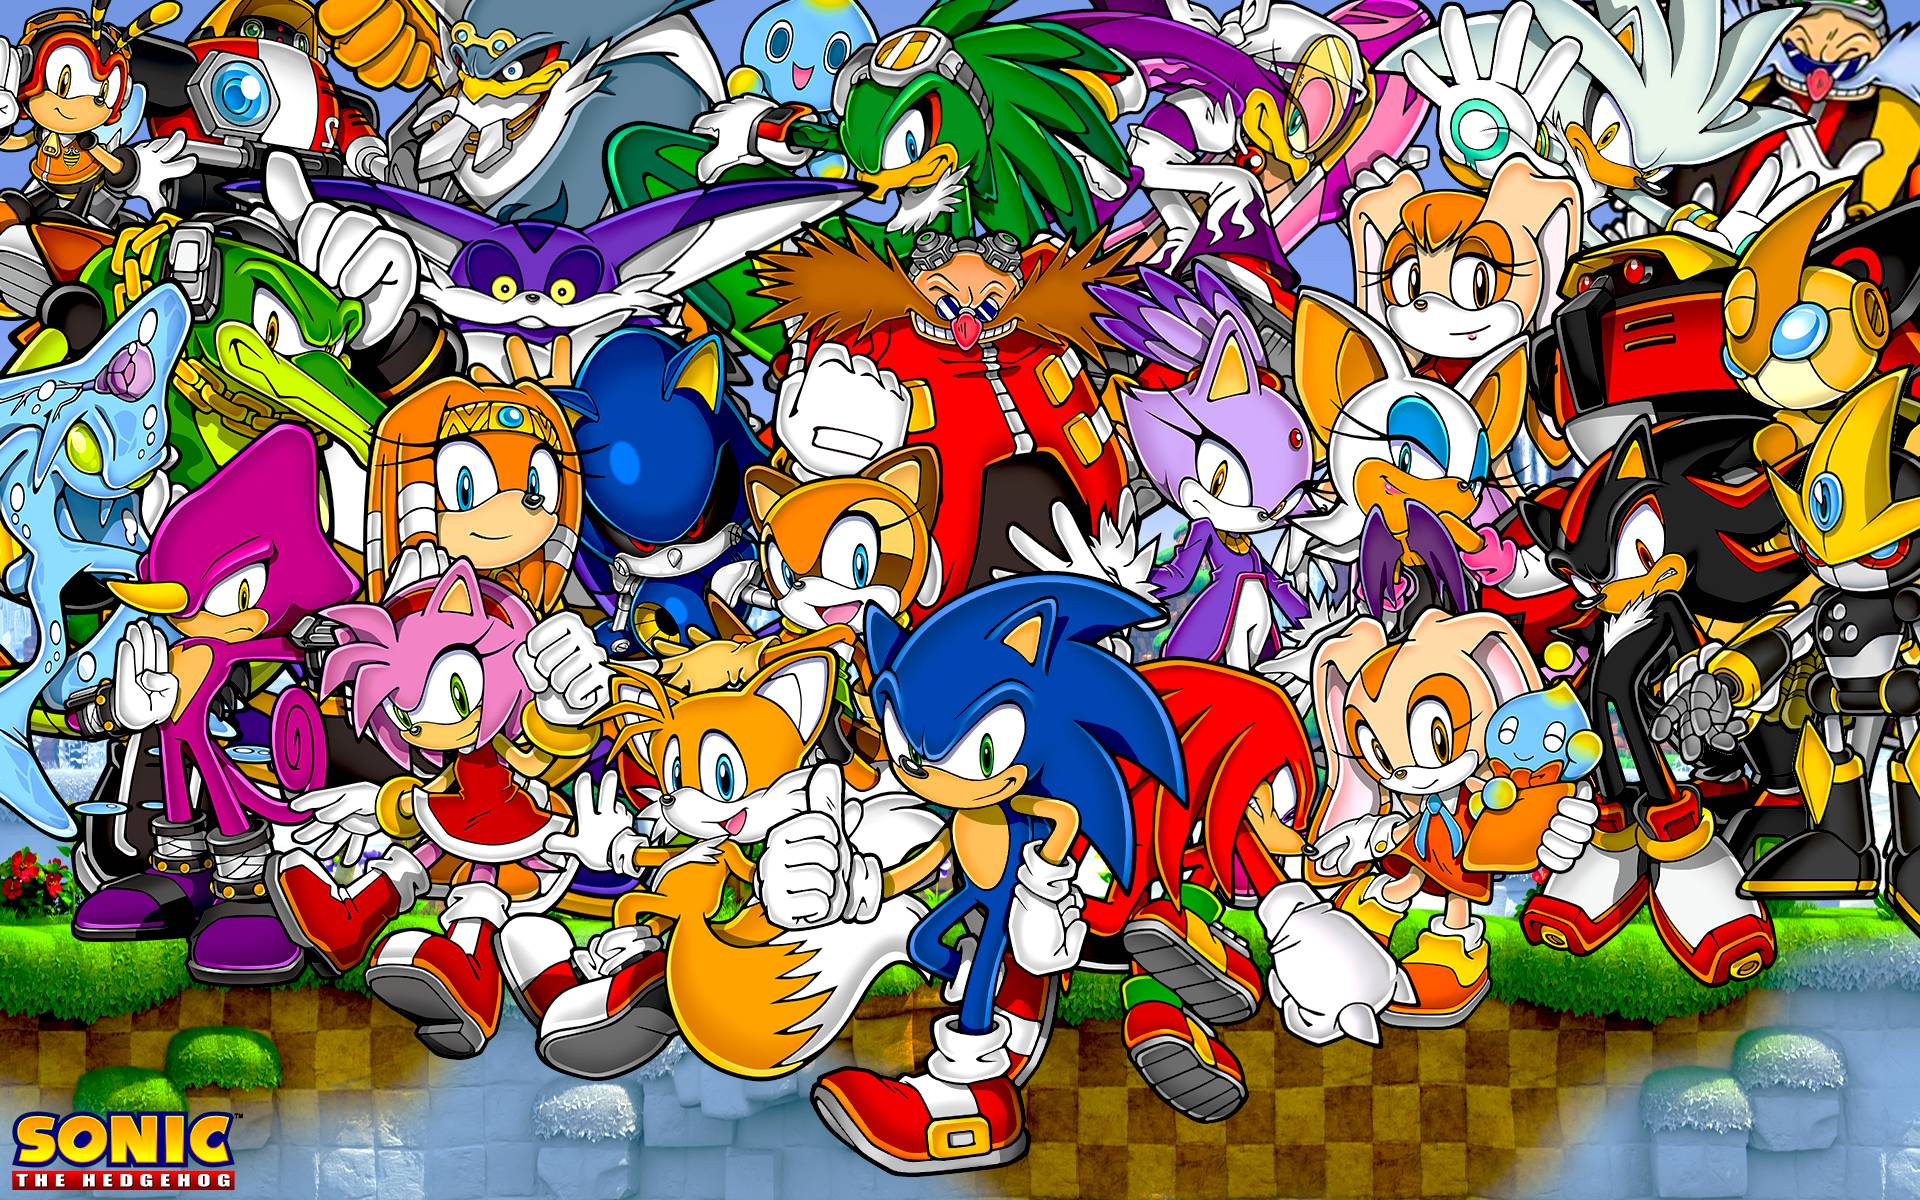 Sonic The Hedgehog And Friends Wallpapers by SonicTheHedgehogBG on